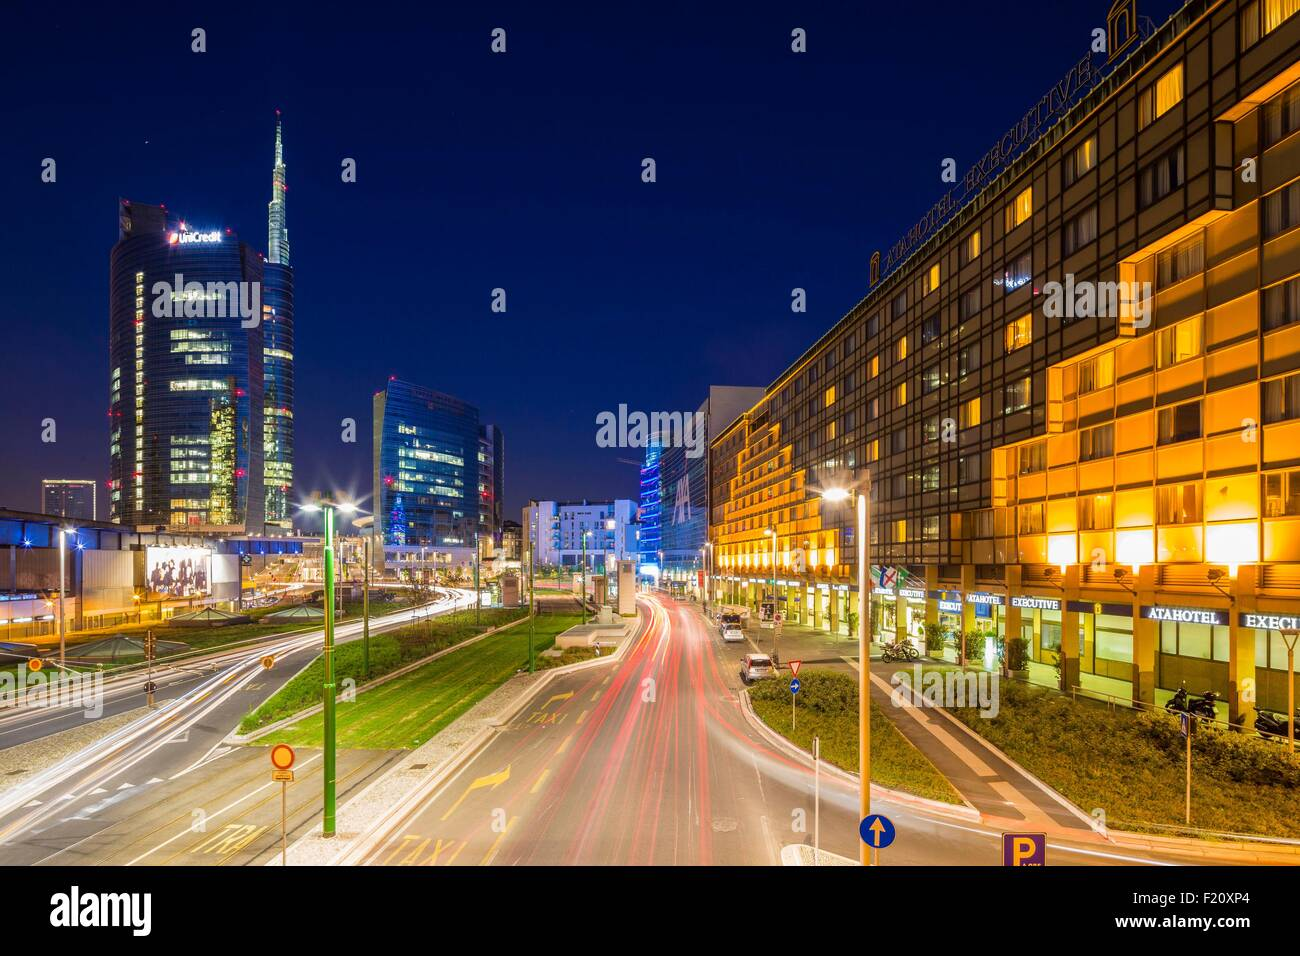 Italy, Lombardy, Milan, district of Porta Nuova and the tower Unicredit bigger skyscraper of Italy - Stock Image